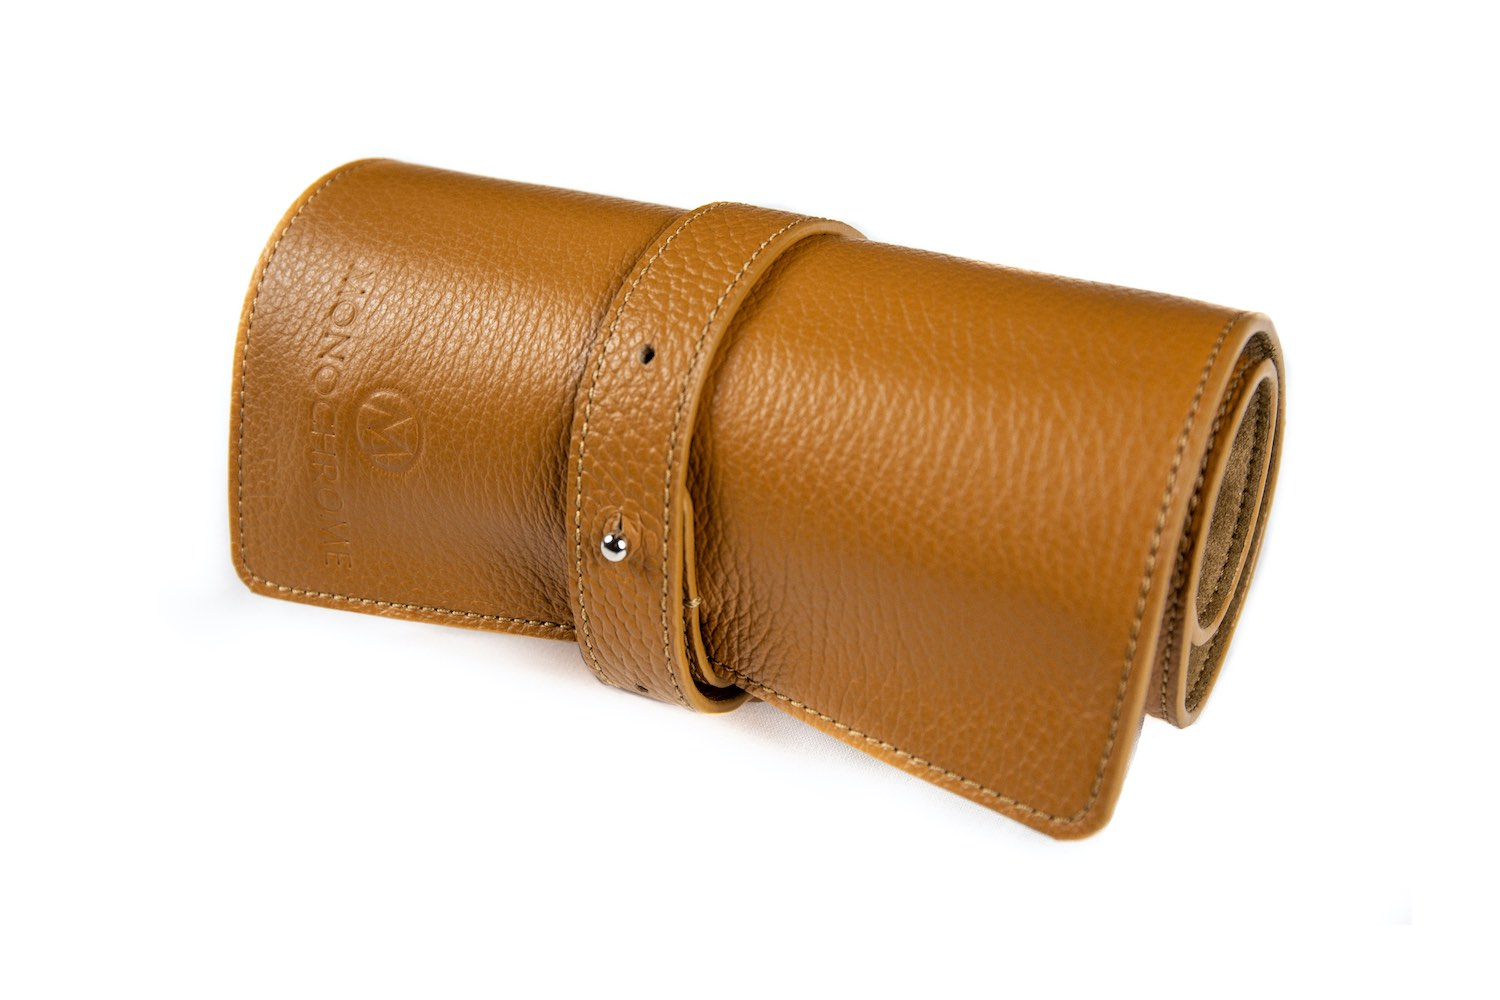 MONOCHROME leather watch rolls - 3